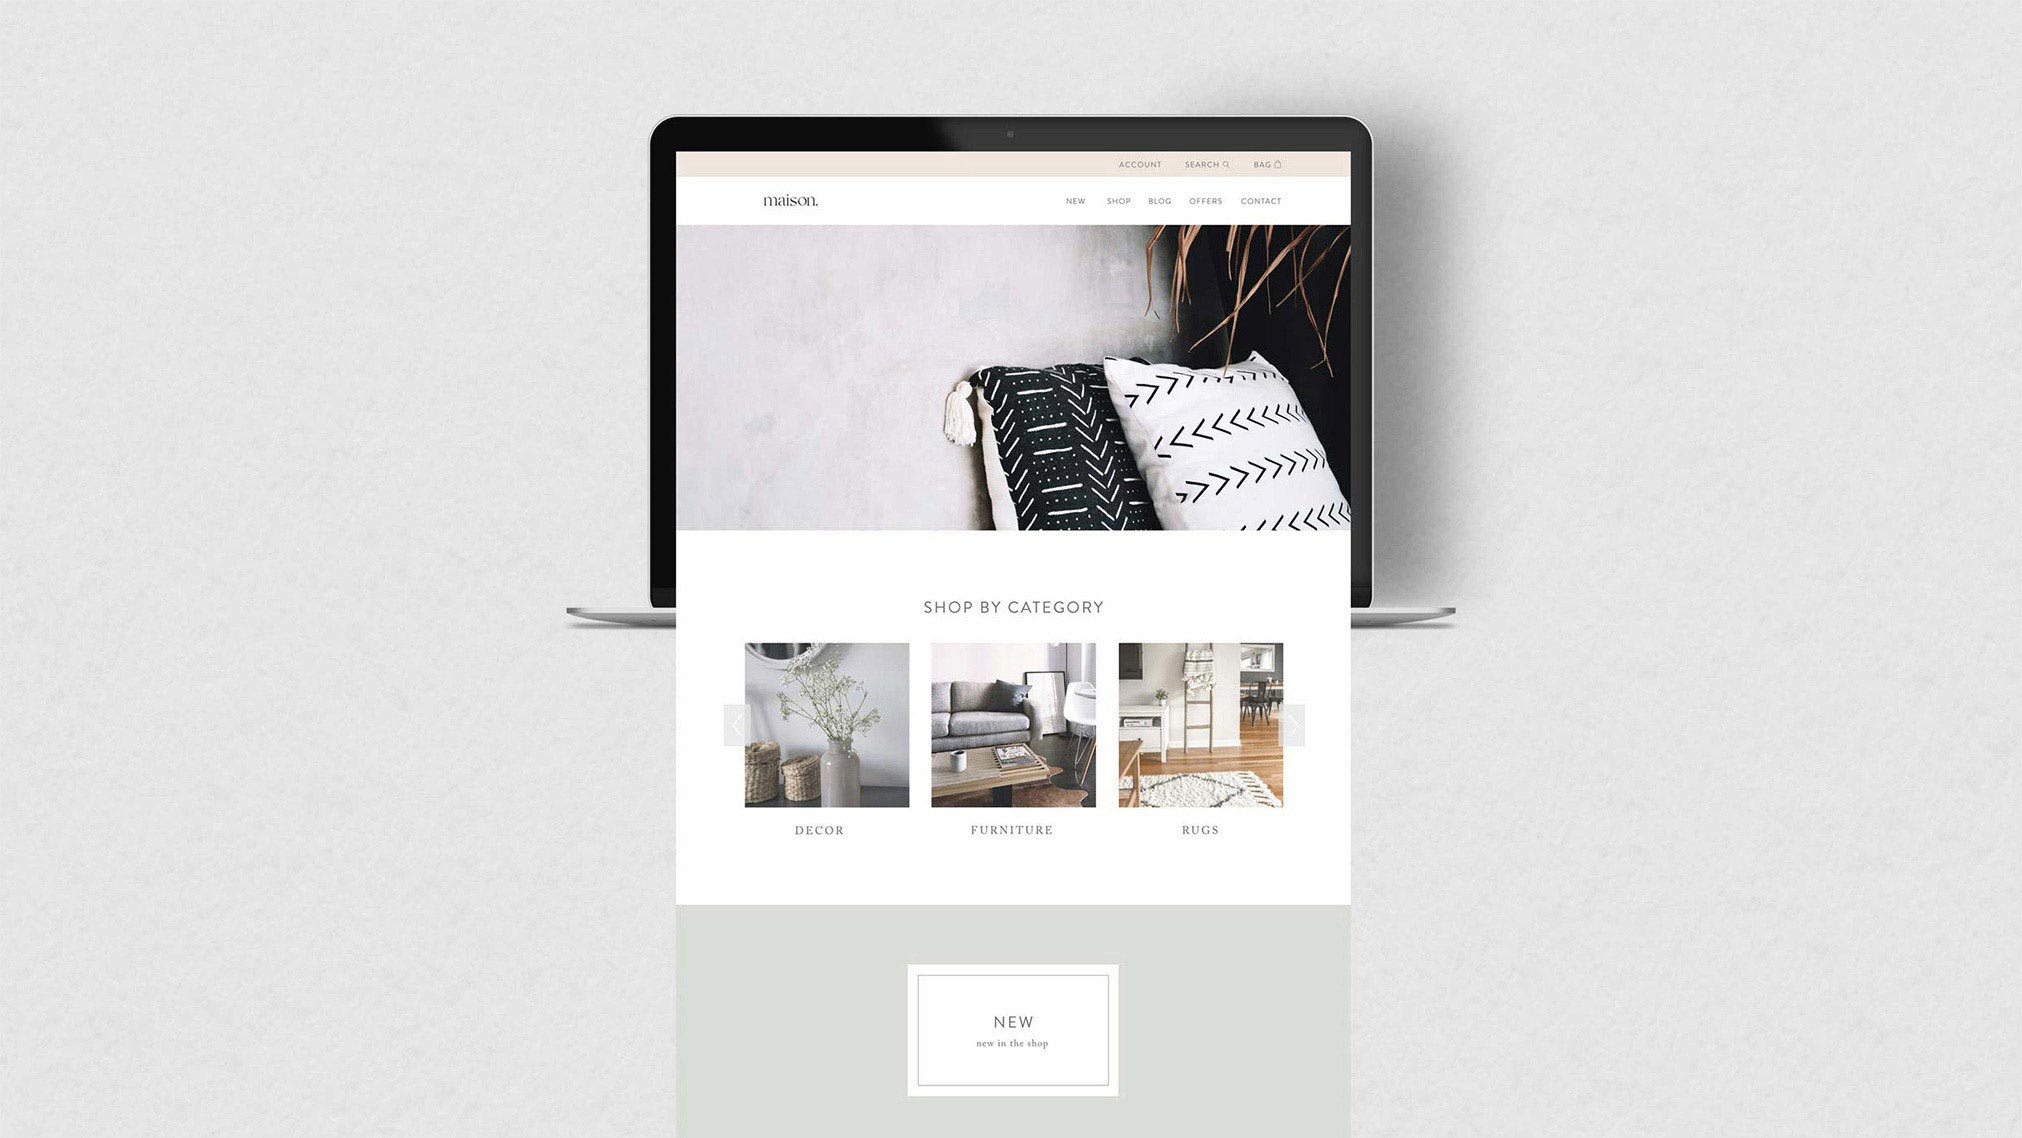 Maison's brand identity is unified by their warm and modern aesthetic. Through HTML and CSS, their e-commerce website was developed and came to life with neutral colour tones, natural materials and warm textures just like their products.